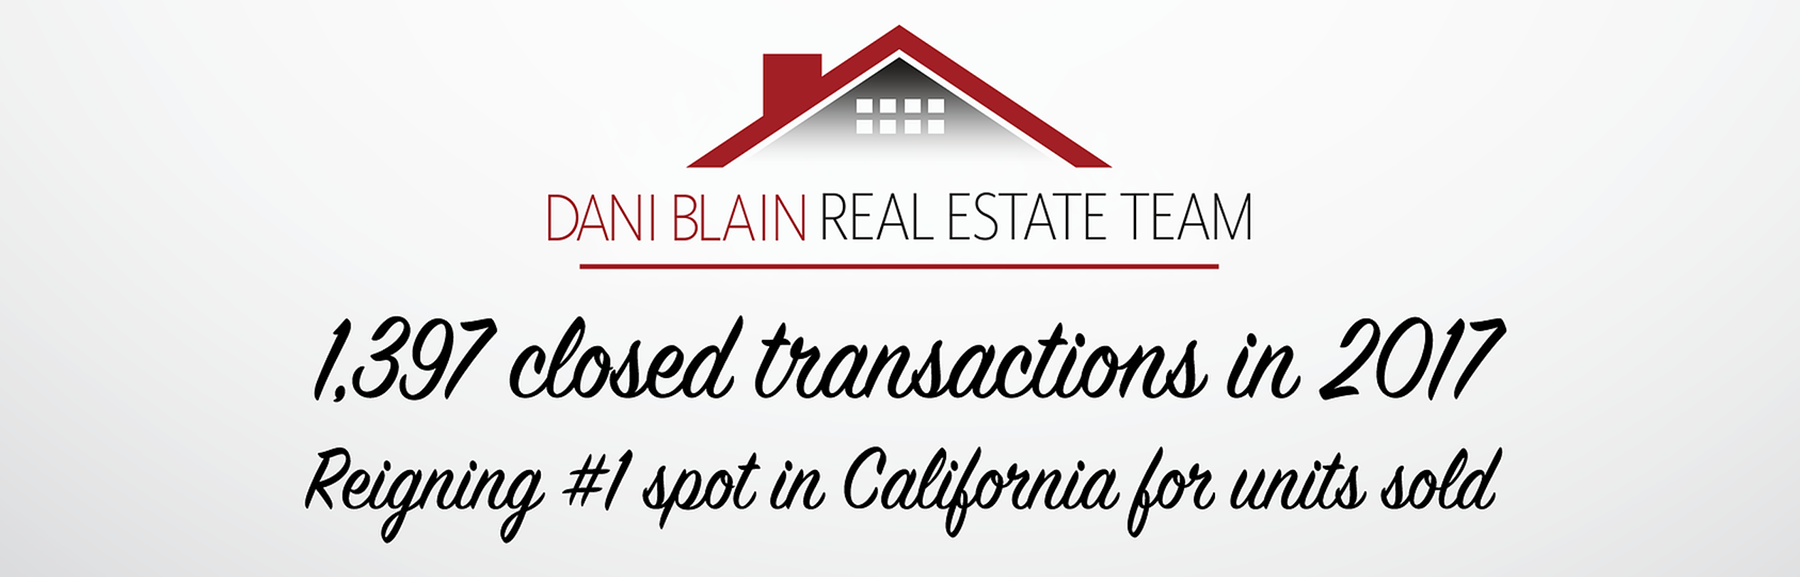 The Dani Blain Real Estate Team has closed over 1400 transactions so far in 2018!